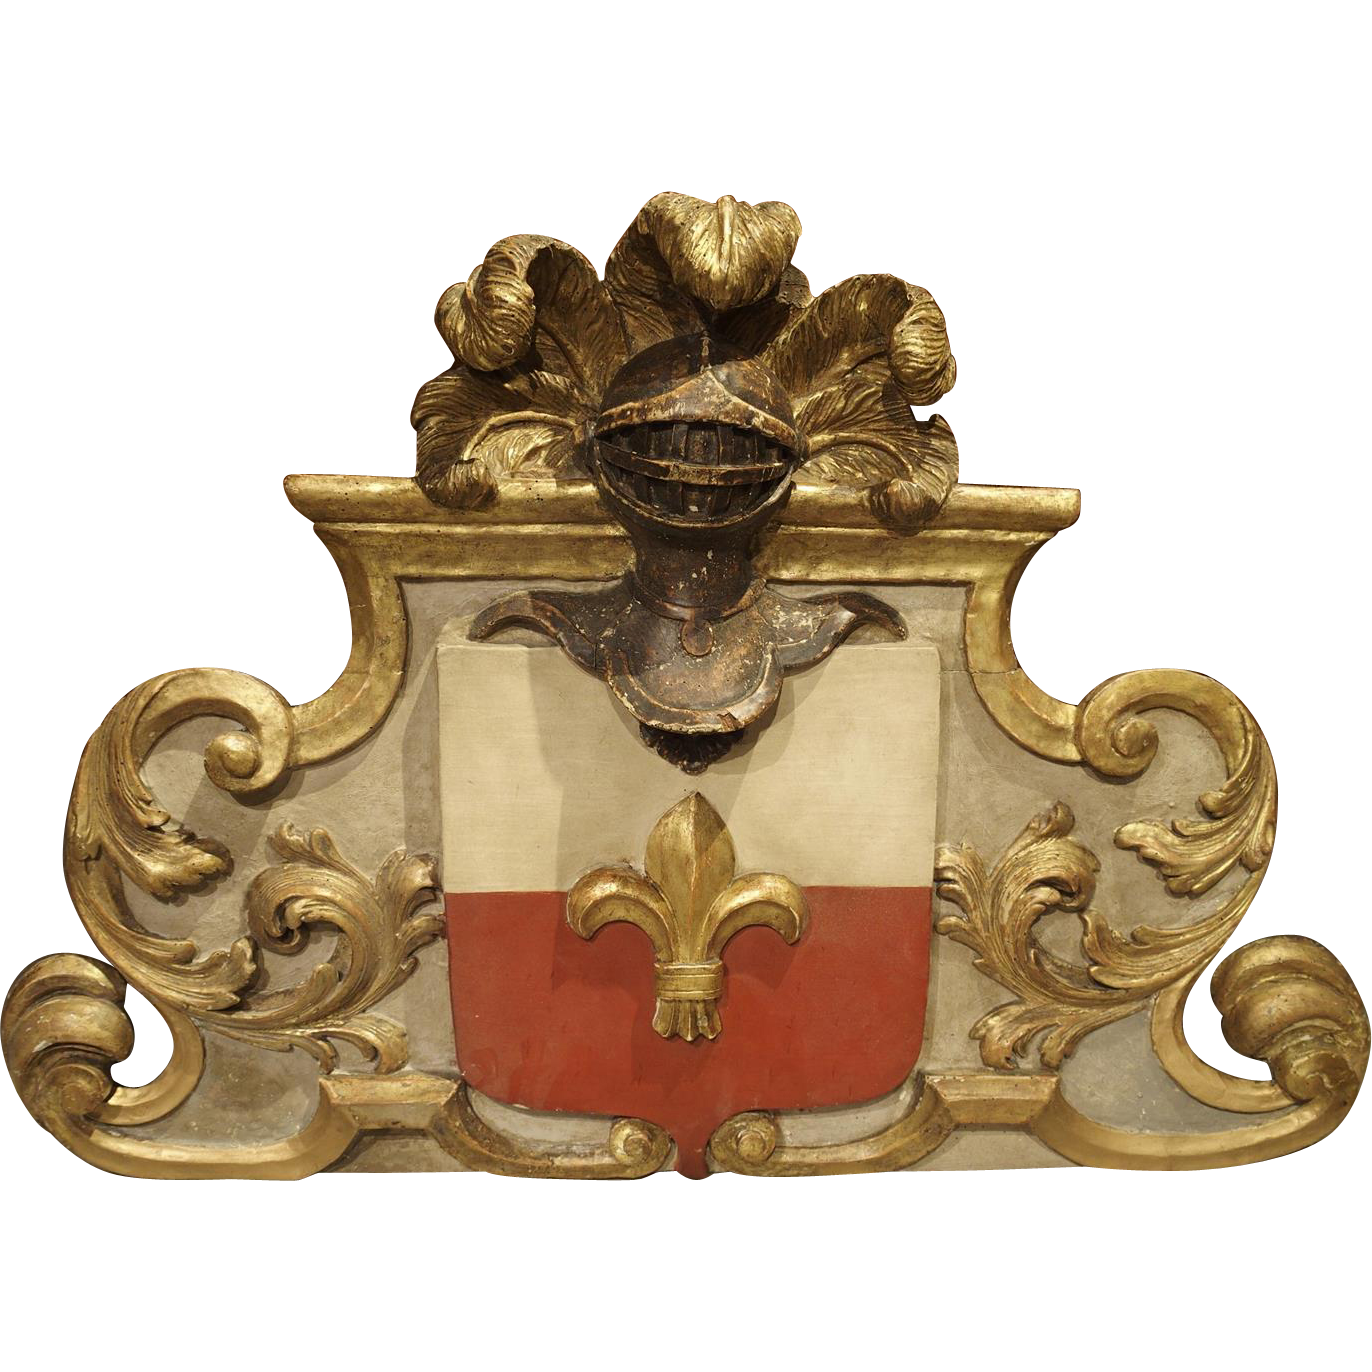 Painted Antique French Architectural Panel from the Early 1700s